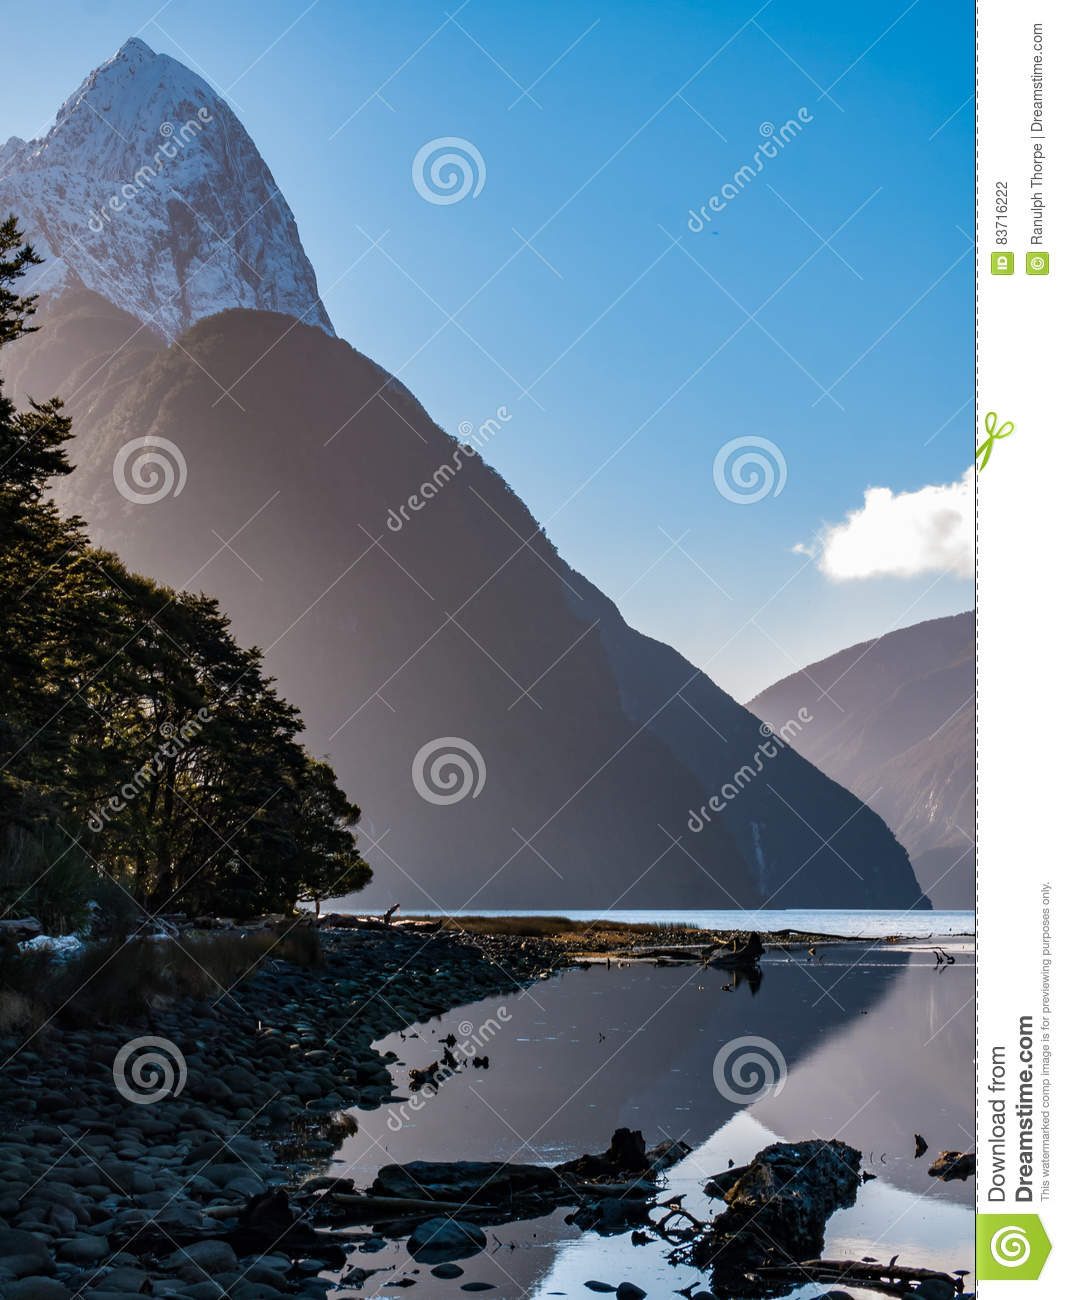 Snowcaped Mountains With A Lake Glassy Shore Stock Photo